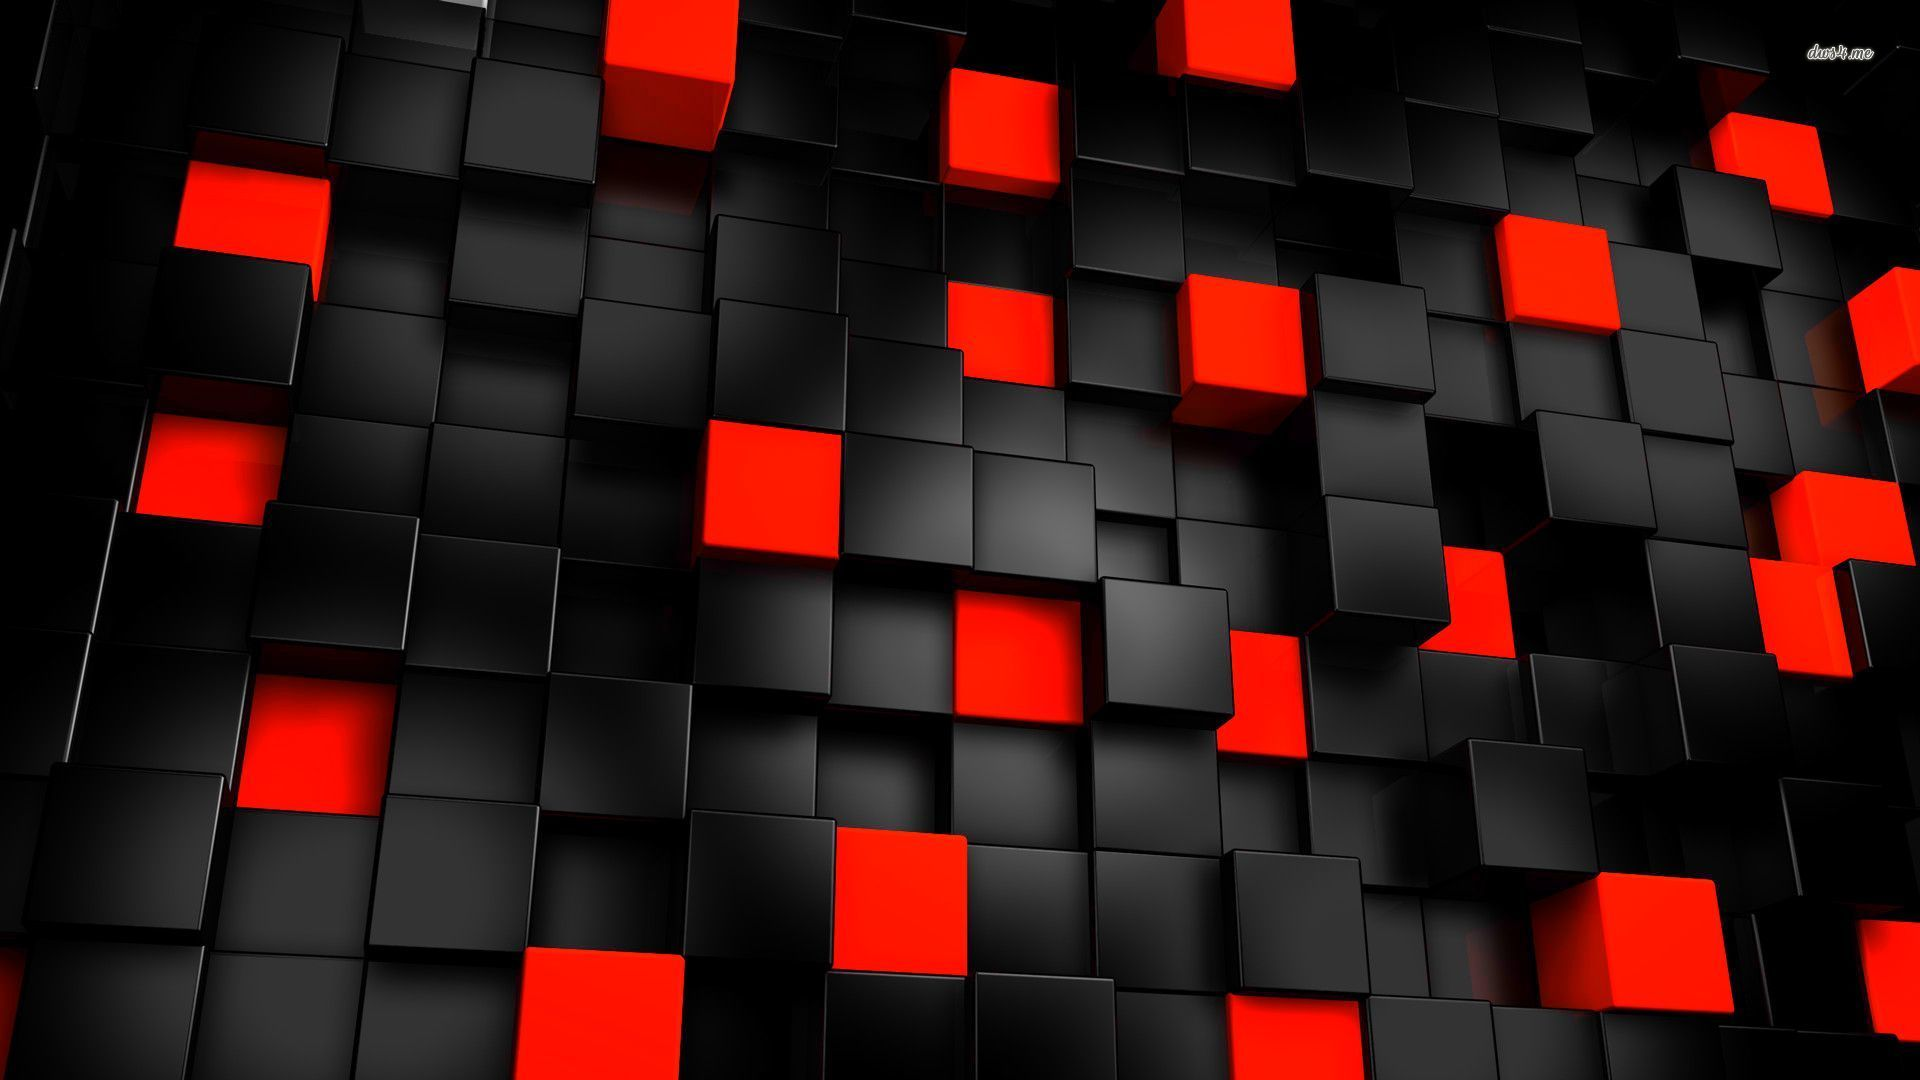 black and red cubes